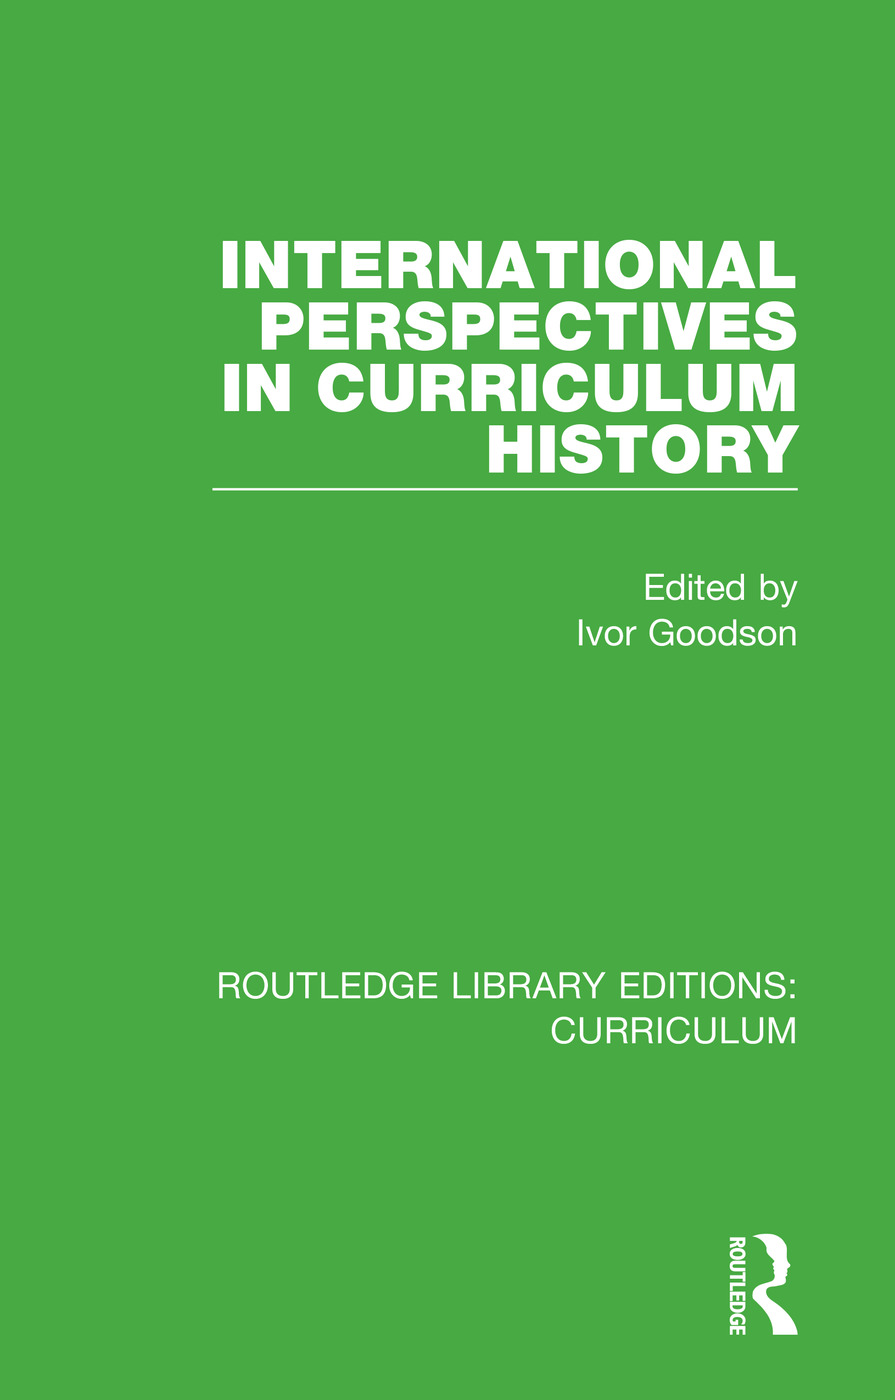 International Perspectives in Curriculum History